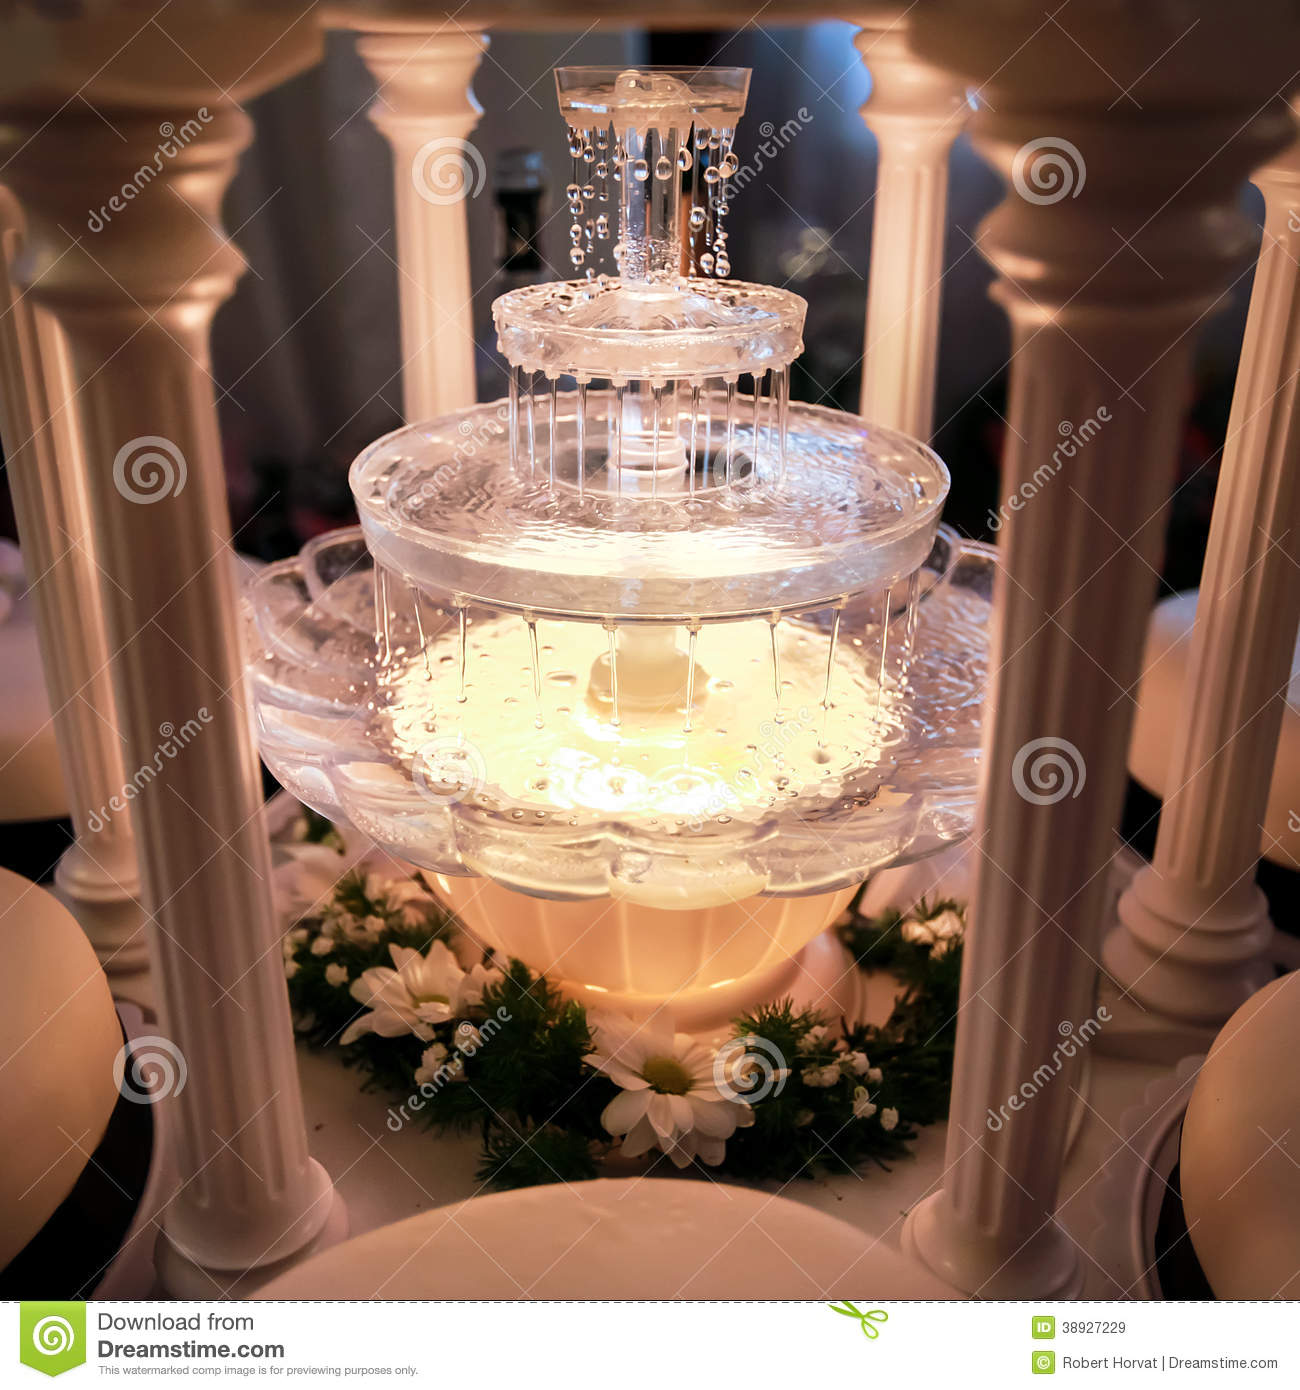 Image Result For Royalty Free Music For Weddings